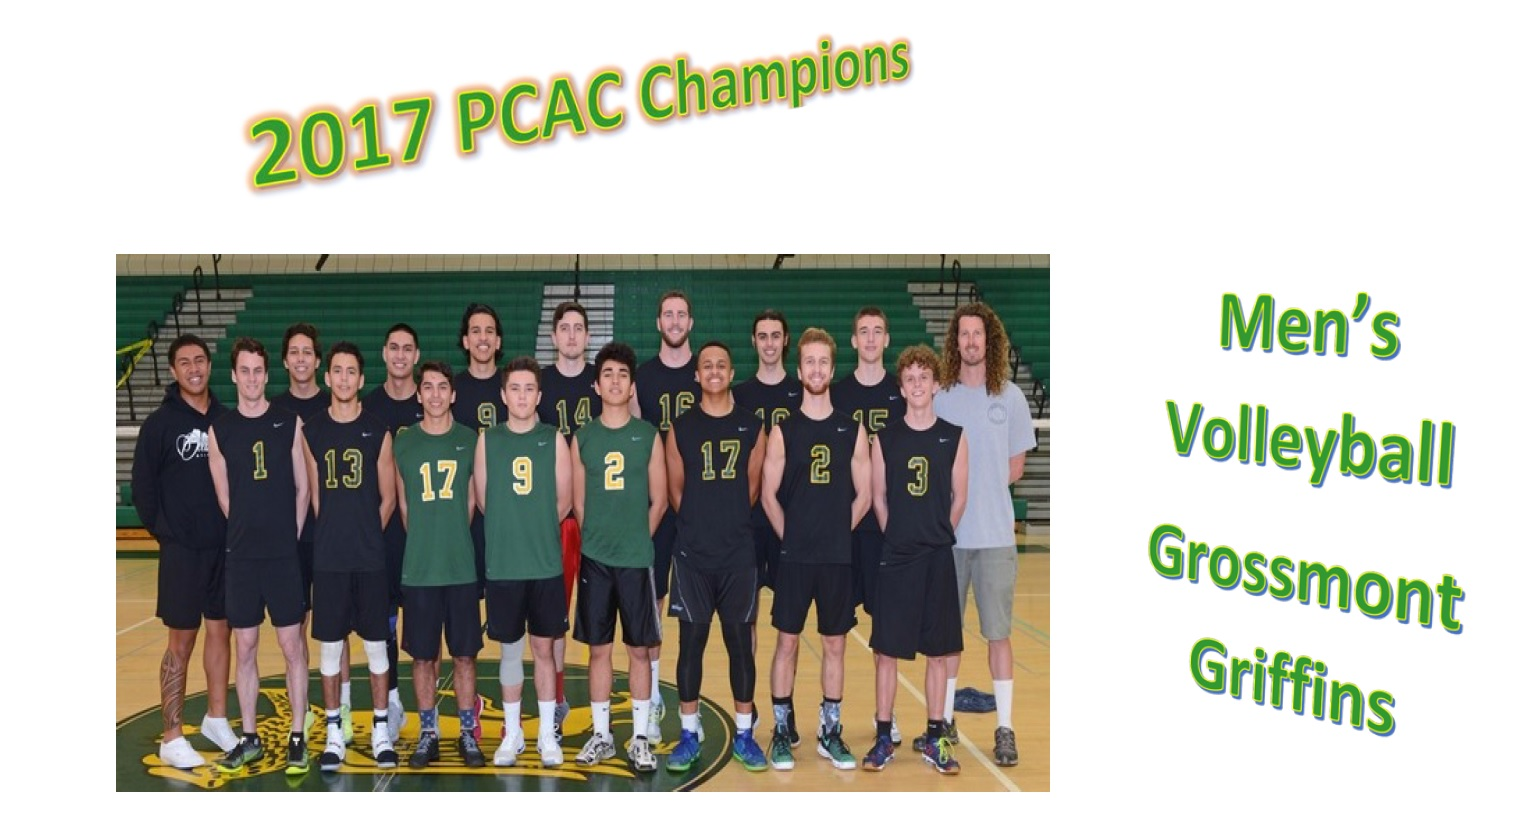 Men's Volleyball 2017 PCAC Champions!